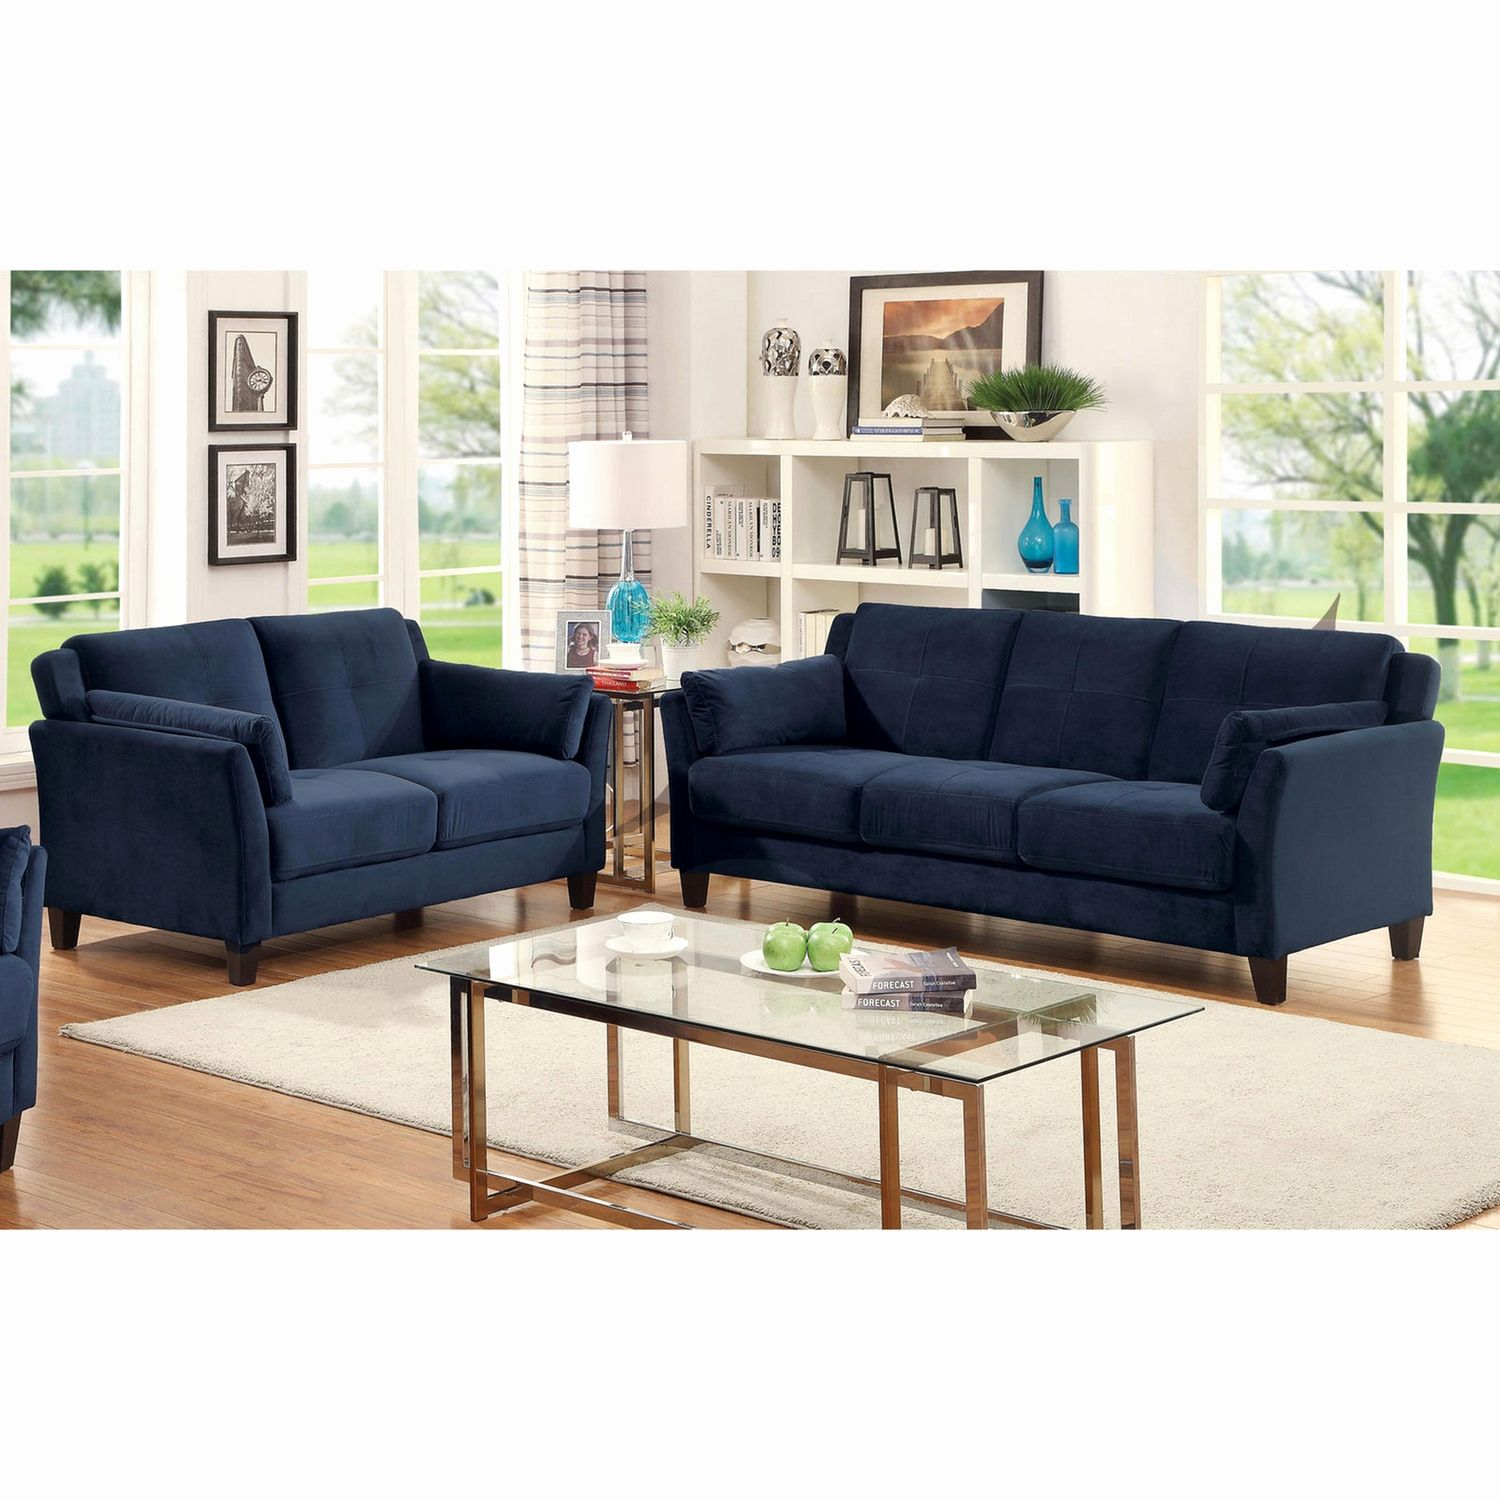 New 2 Piece sofa Set Image 2 Piece sofa Set New Furniture